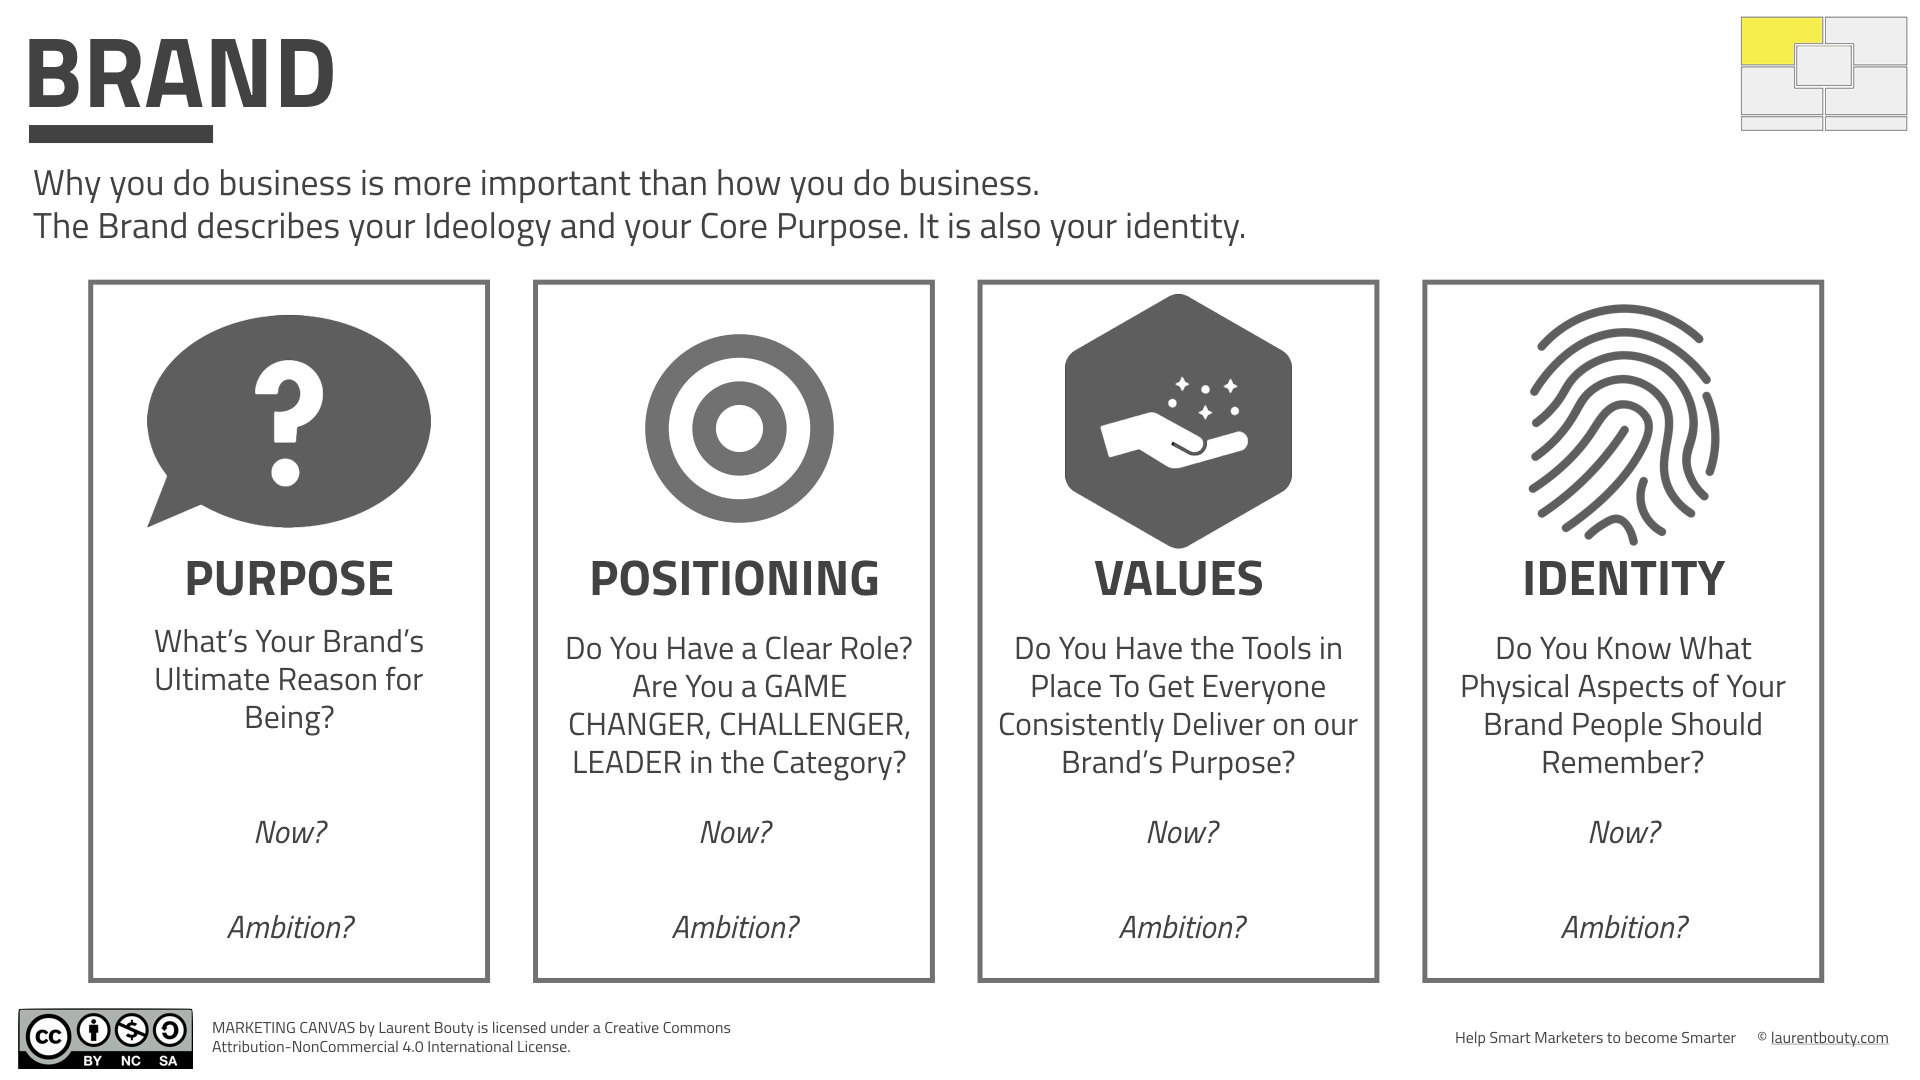 4 Questions for your  BRAND  in the Marketing Canvas